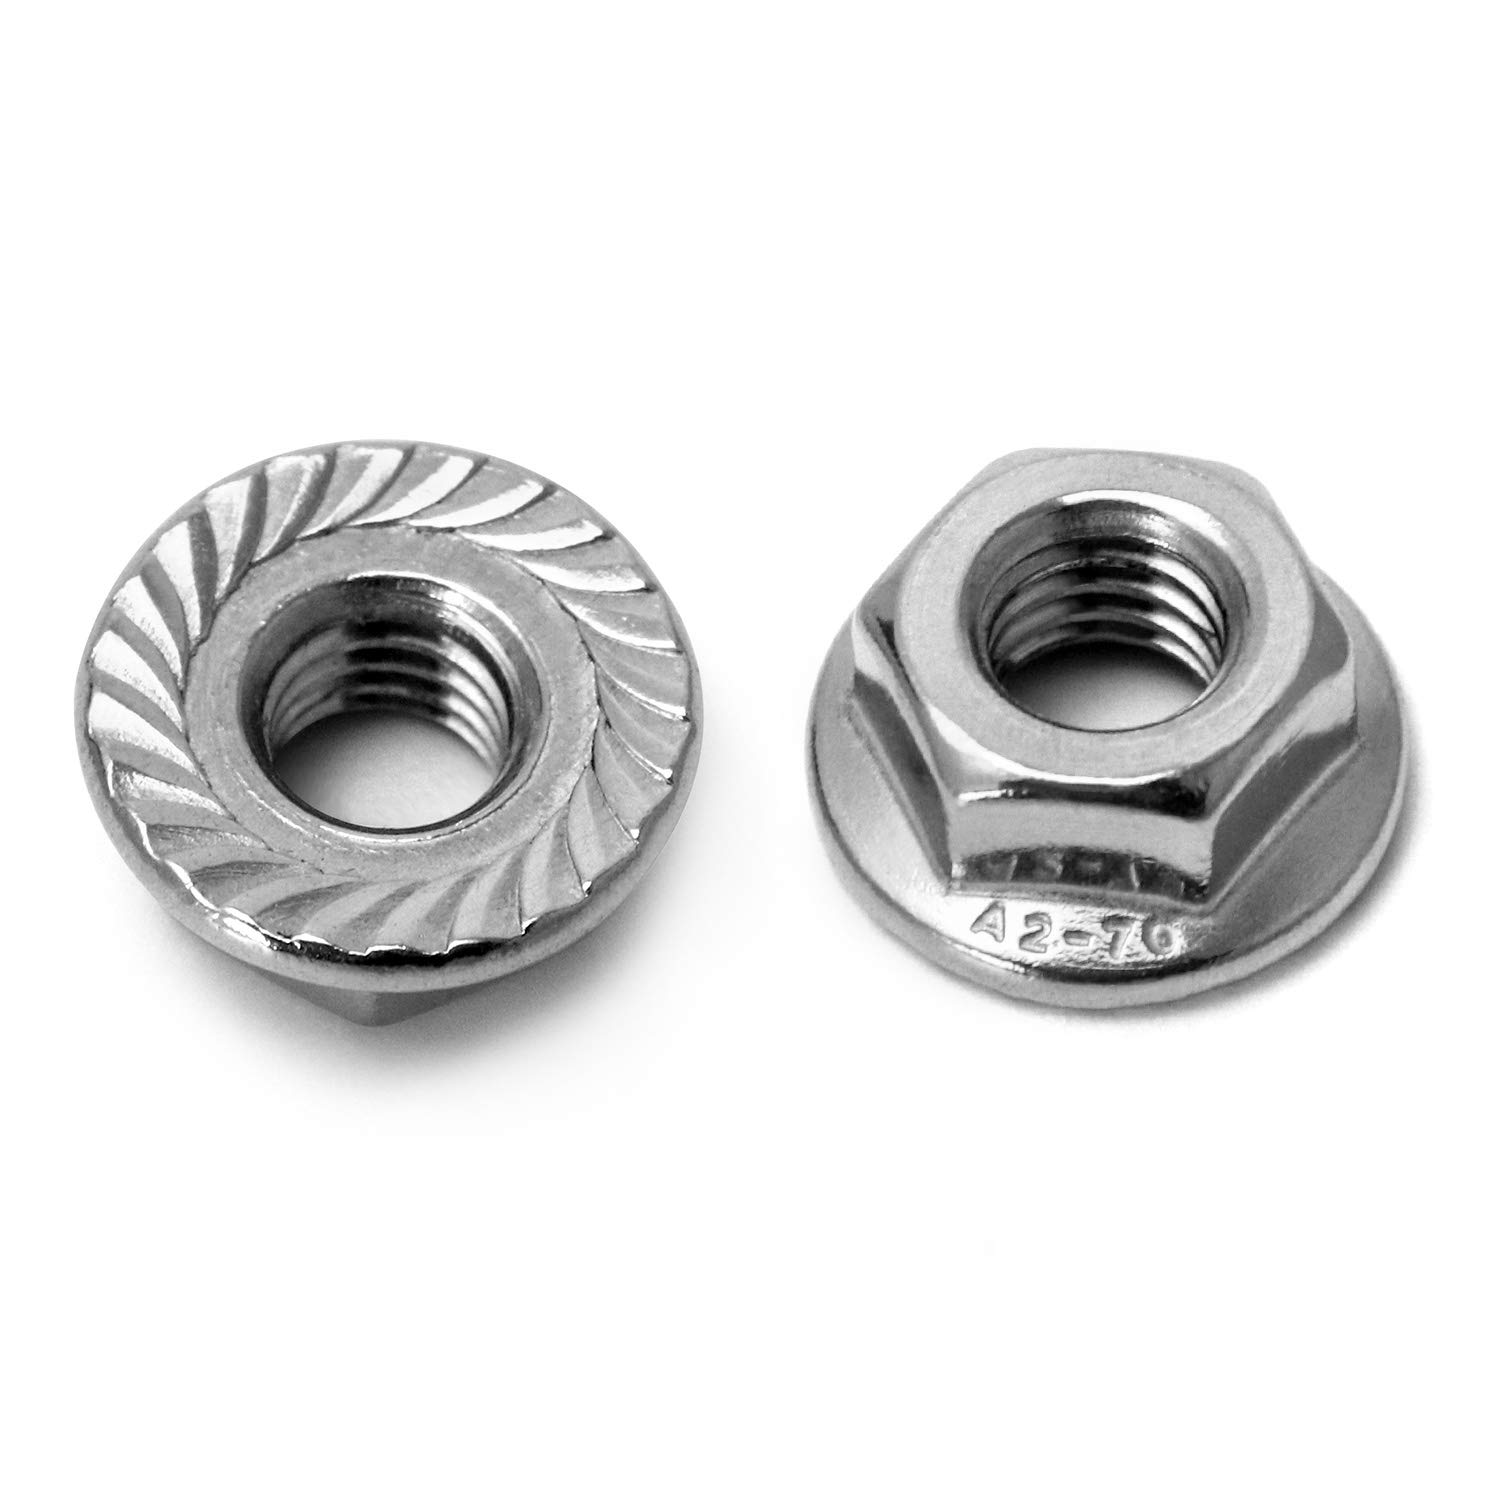 304 Stainless Steel 18-8 Bright Finish Pack of 50 QWORK M6 Serrated Flange Nut Hex Lock Nuts